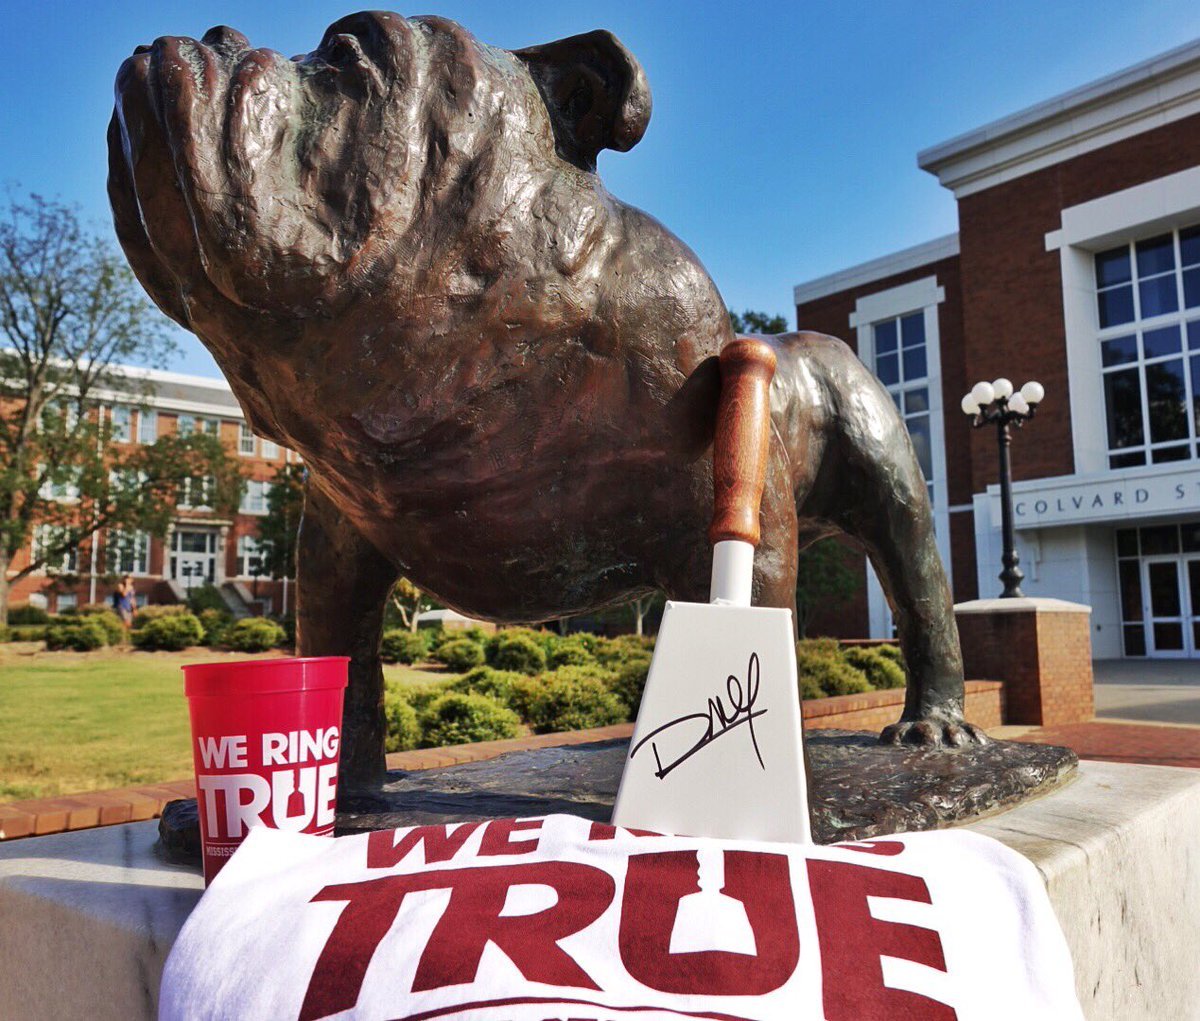 Do you RING TRUE? Retweet this post for a chance to win this week's #WeRingTrue gear! Winner to be drawn Friday. https://t.co/NA02G7R4u1